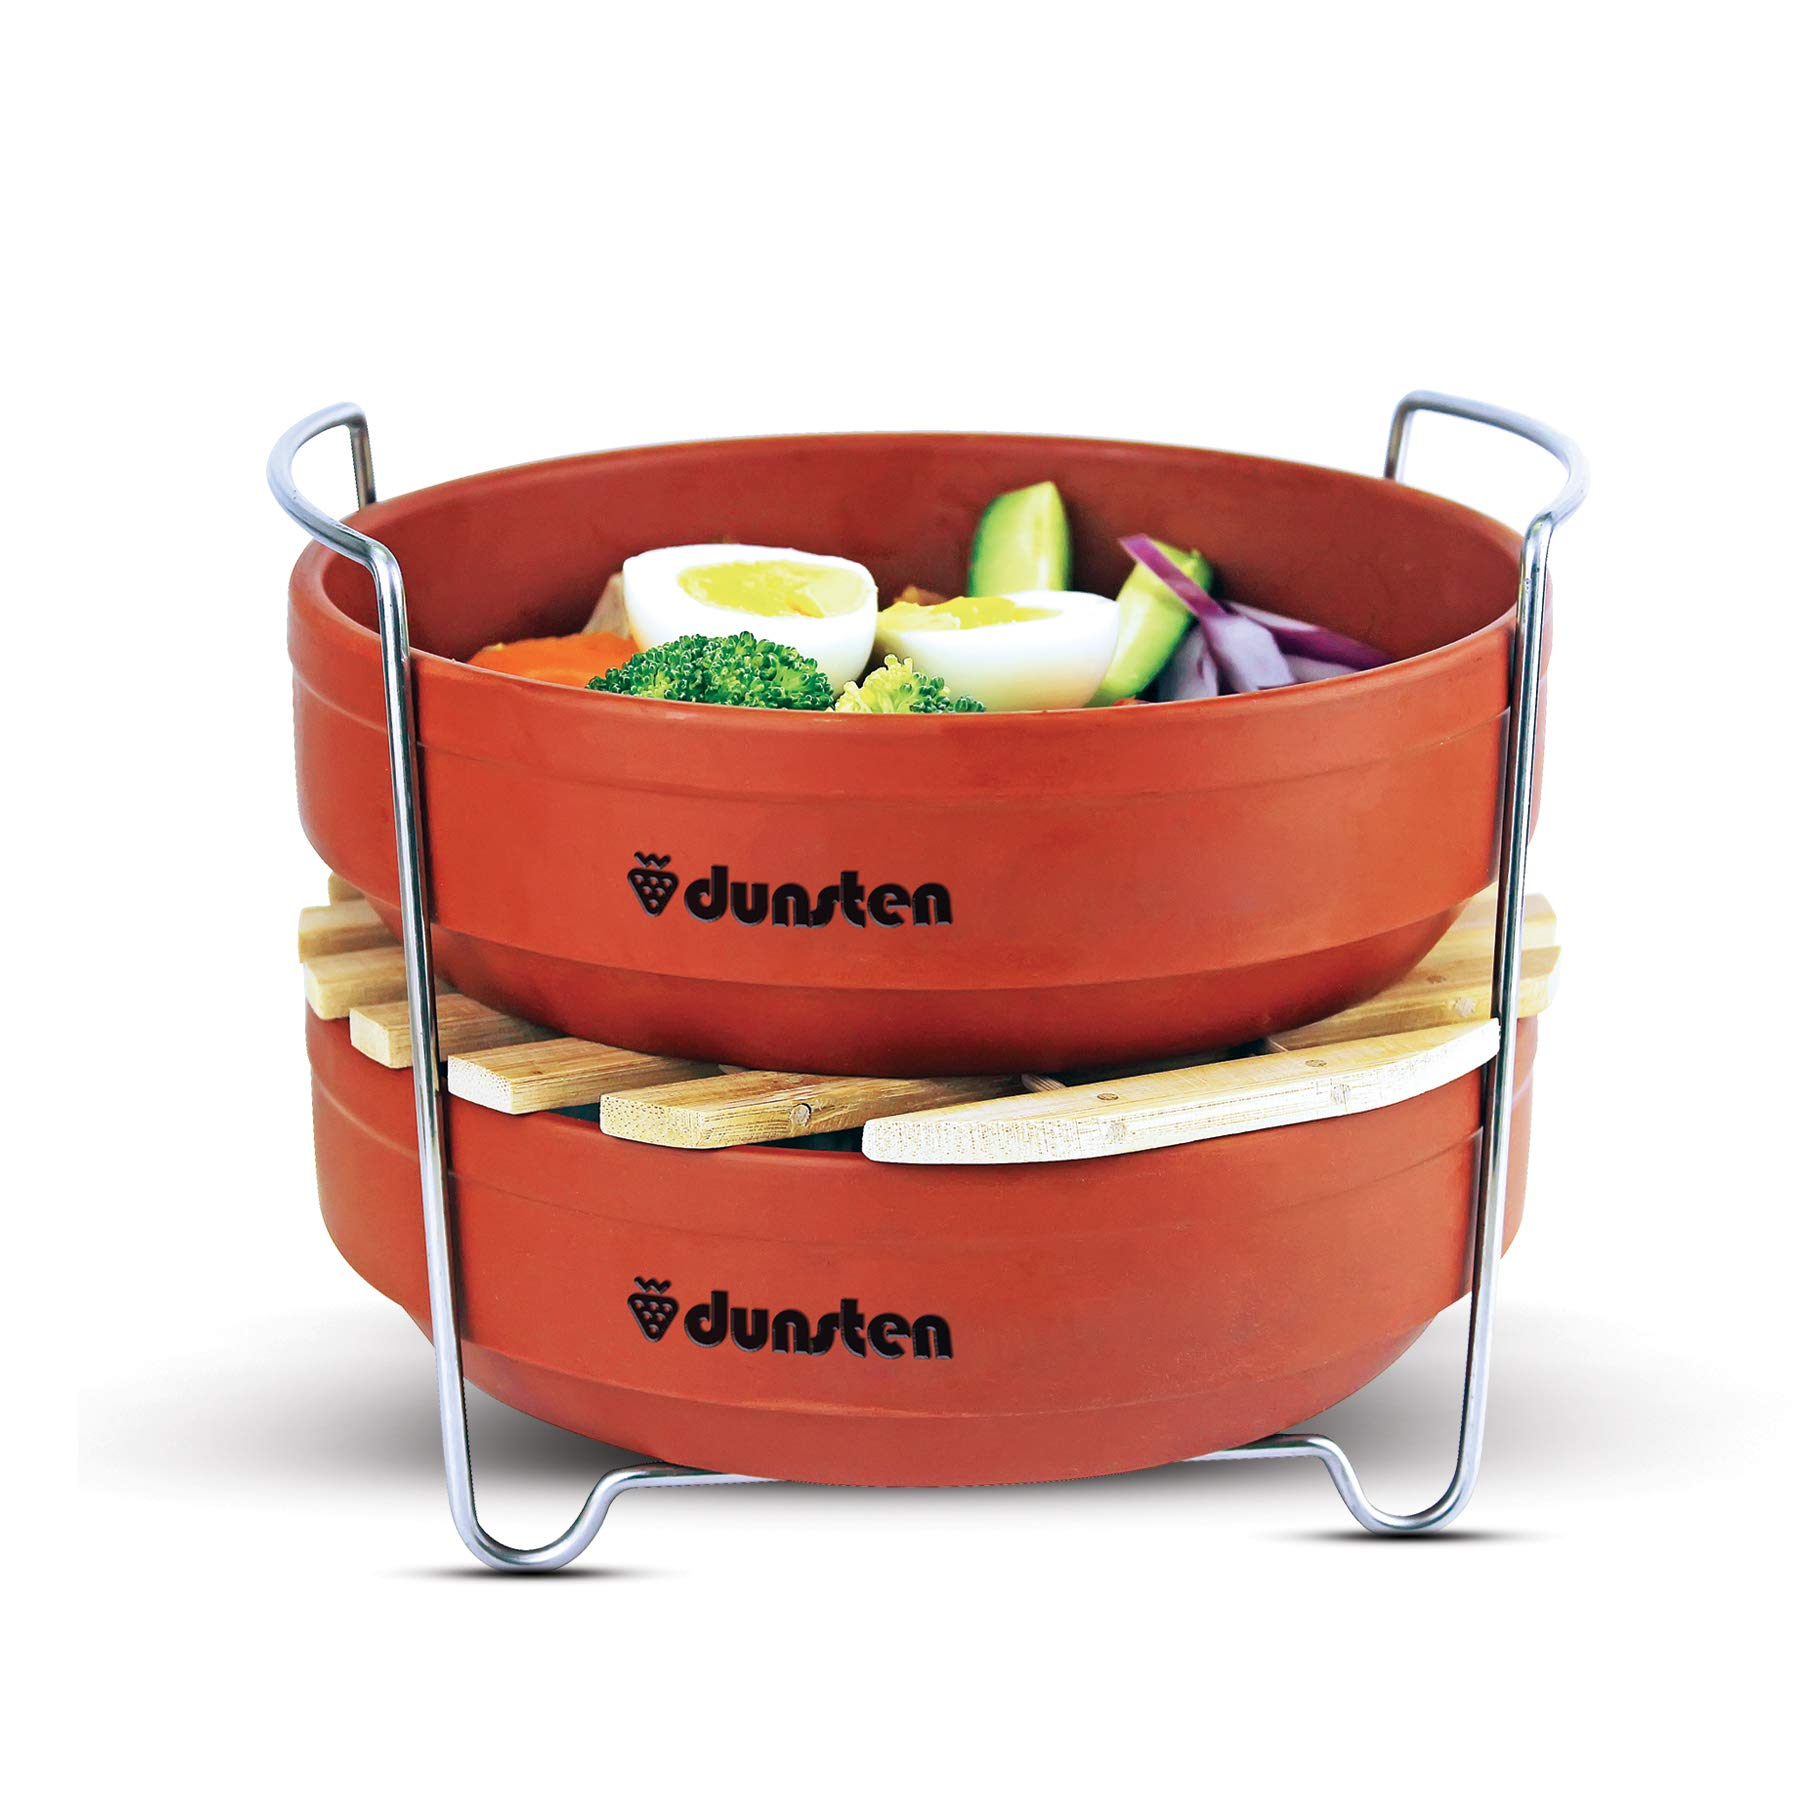 Dunsten Stackable Steamer Insert Pans for 6/8 Qt Electric Pressure Cookers | Easy to Store, Reheat and Clean | Accessories for Instant Pot Cooking | Includes 1 Lid for Leftovers | Dishwasher Safe by DUNSTEN